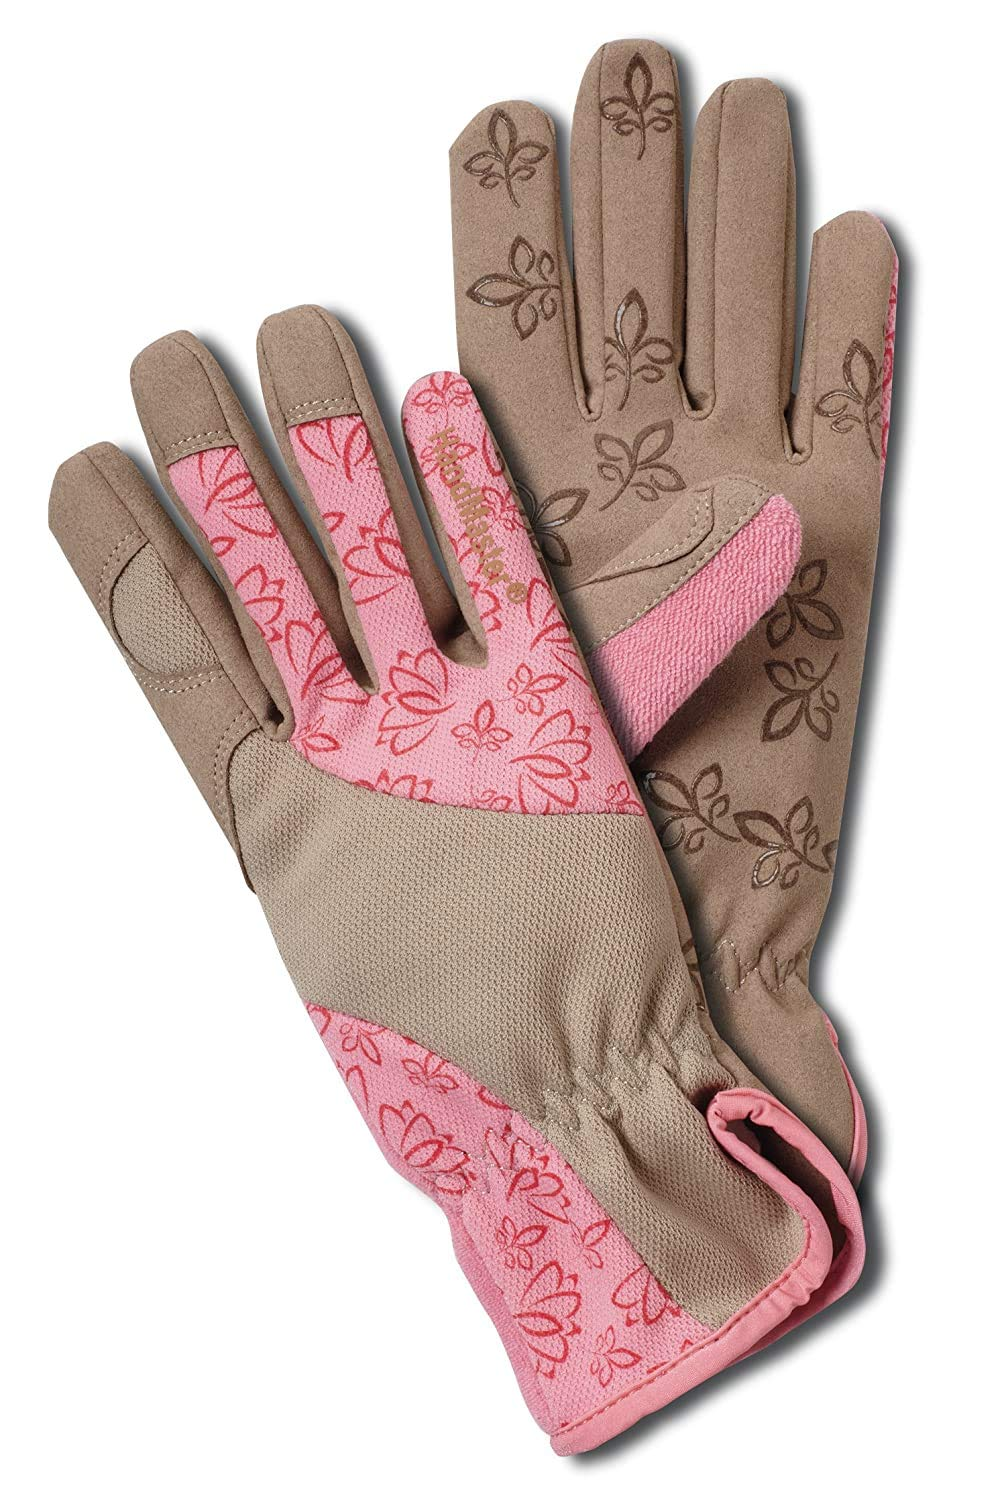 Magid Glove Safety BE168T Bella Lowest price challenge Floral Performanc High Manufacturer direct delivery Women's